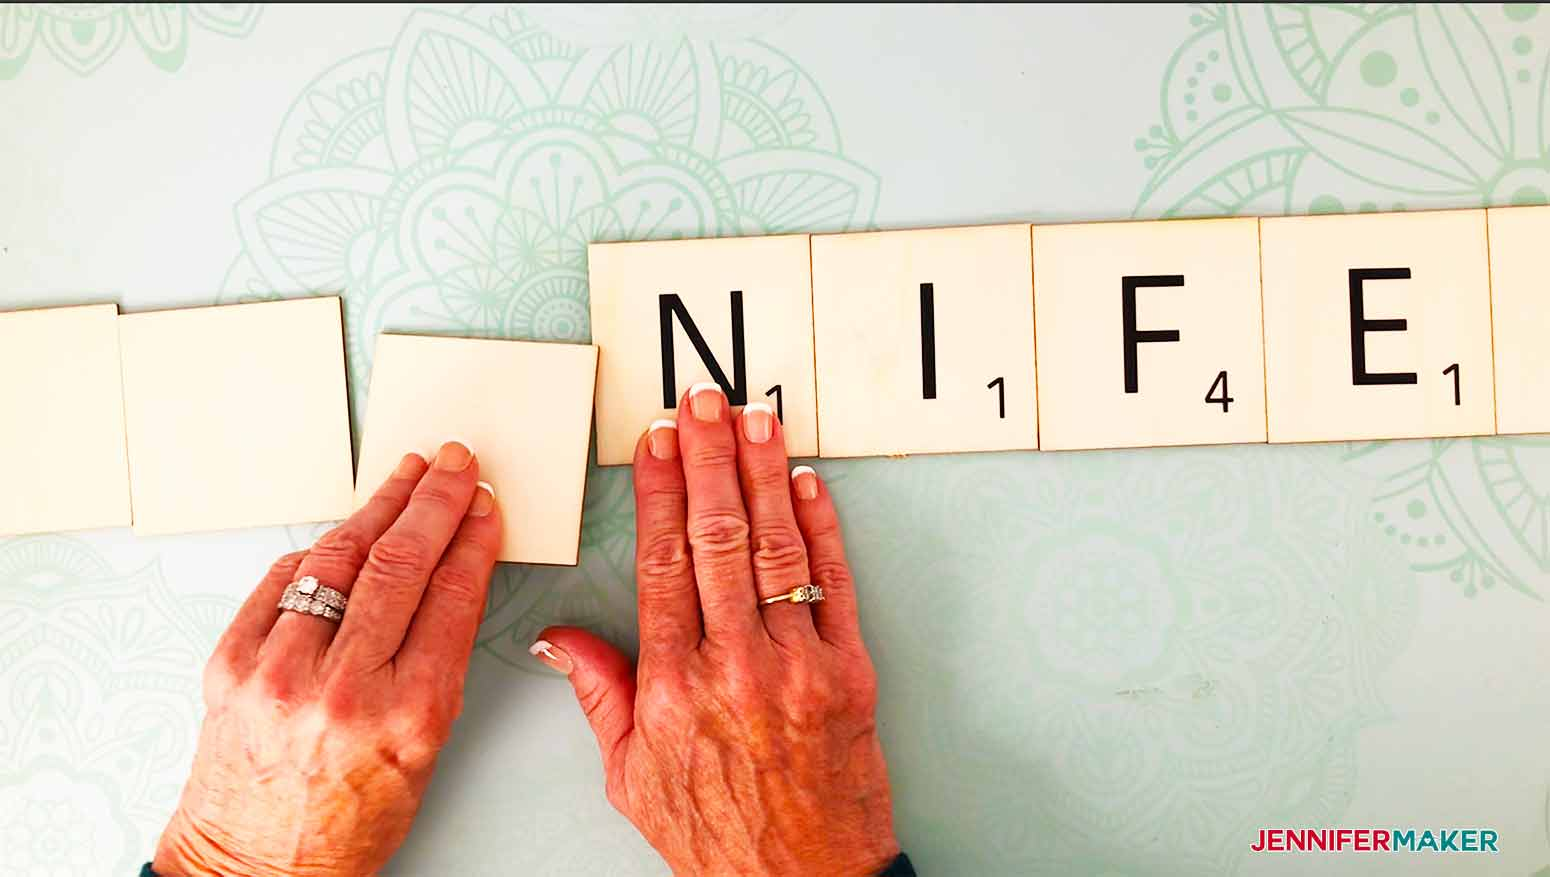 flip the letters over by grabbing them from the top and turning them towards you for my scrabble wall art